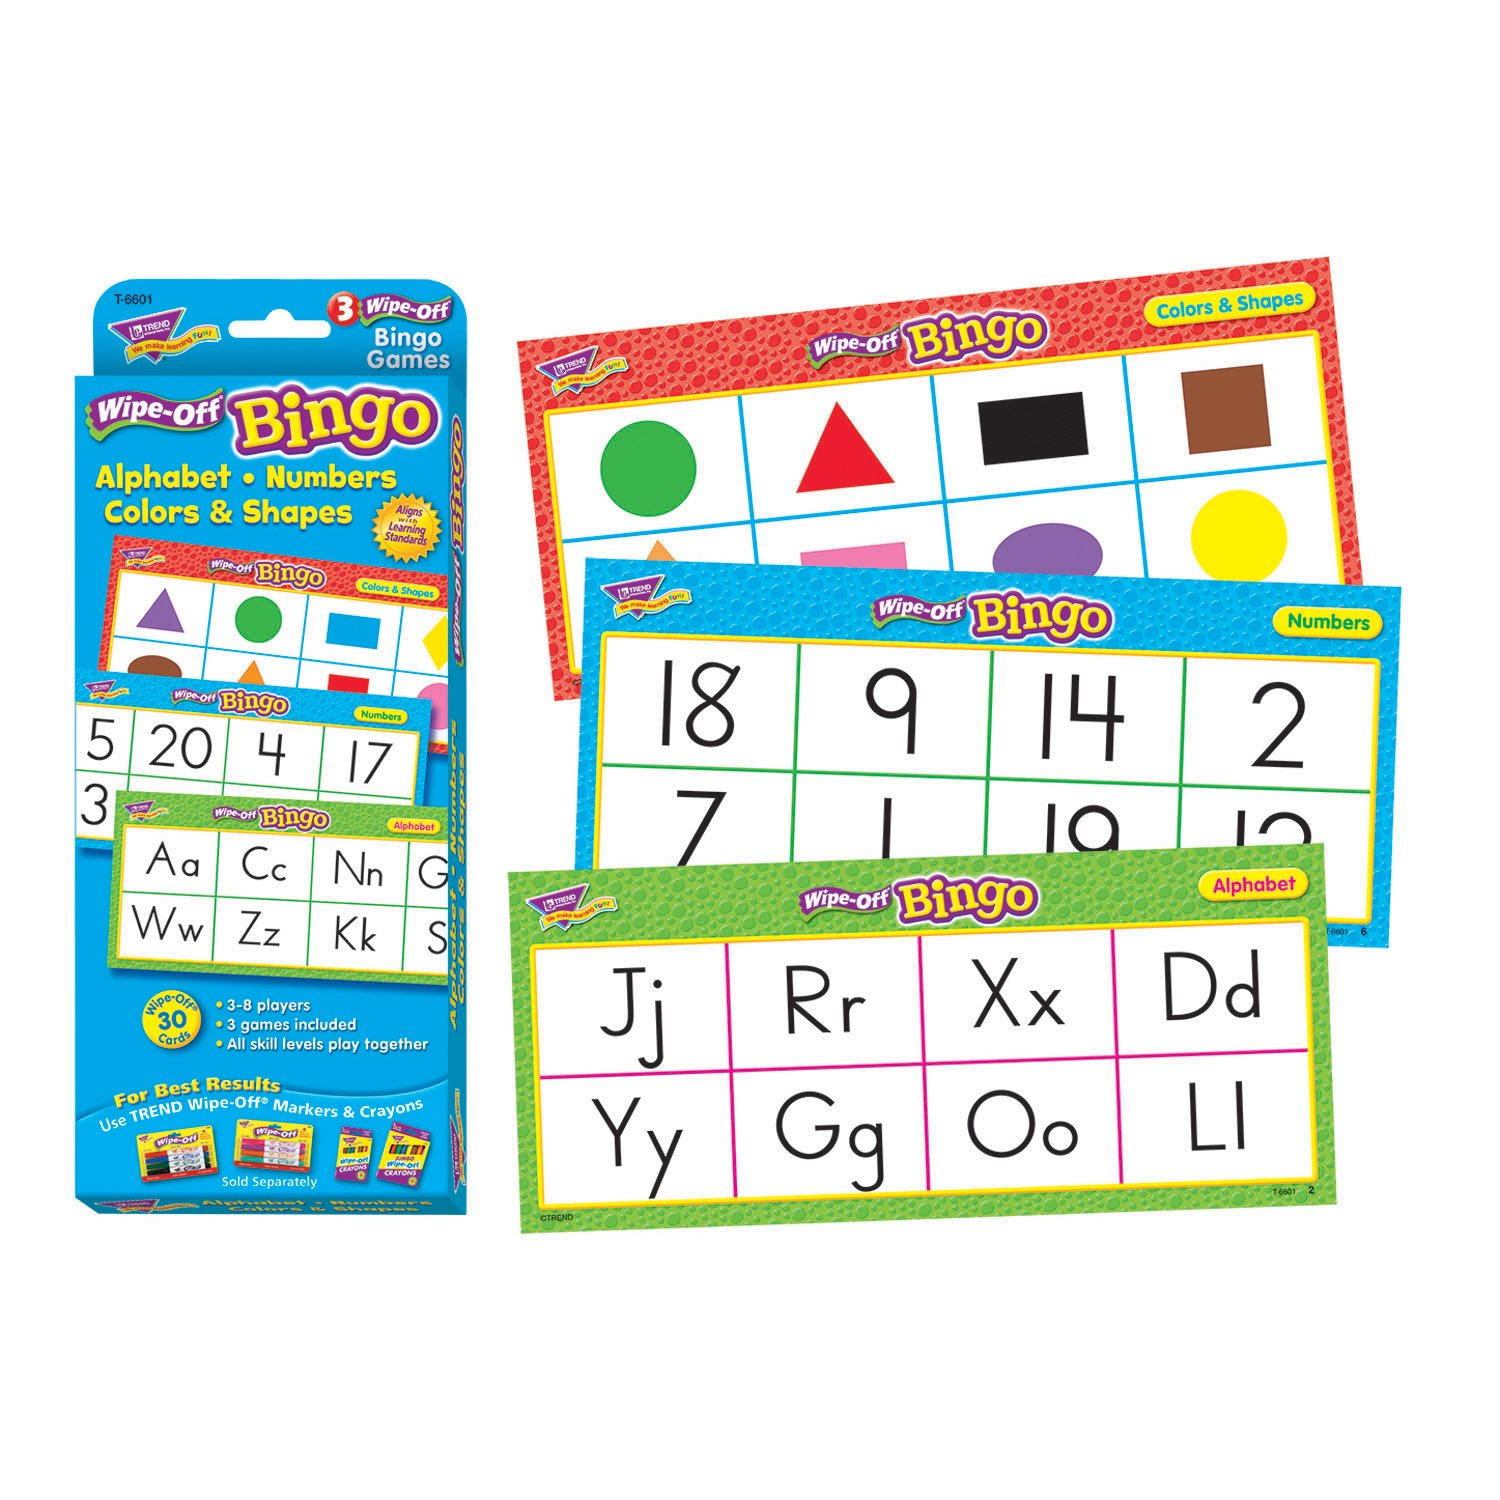 Trend Enterprises Alphabet  Numbers  Colors & Shapes Wipe-Off Bingo Game (28 Piece) T-6601